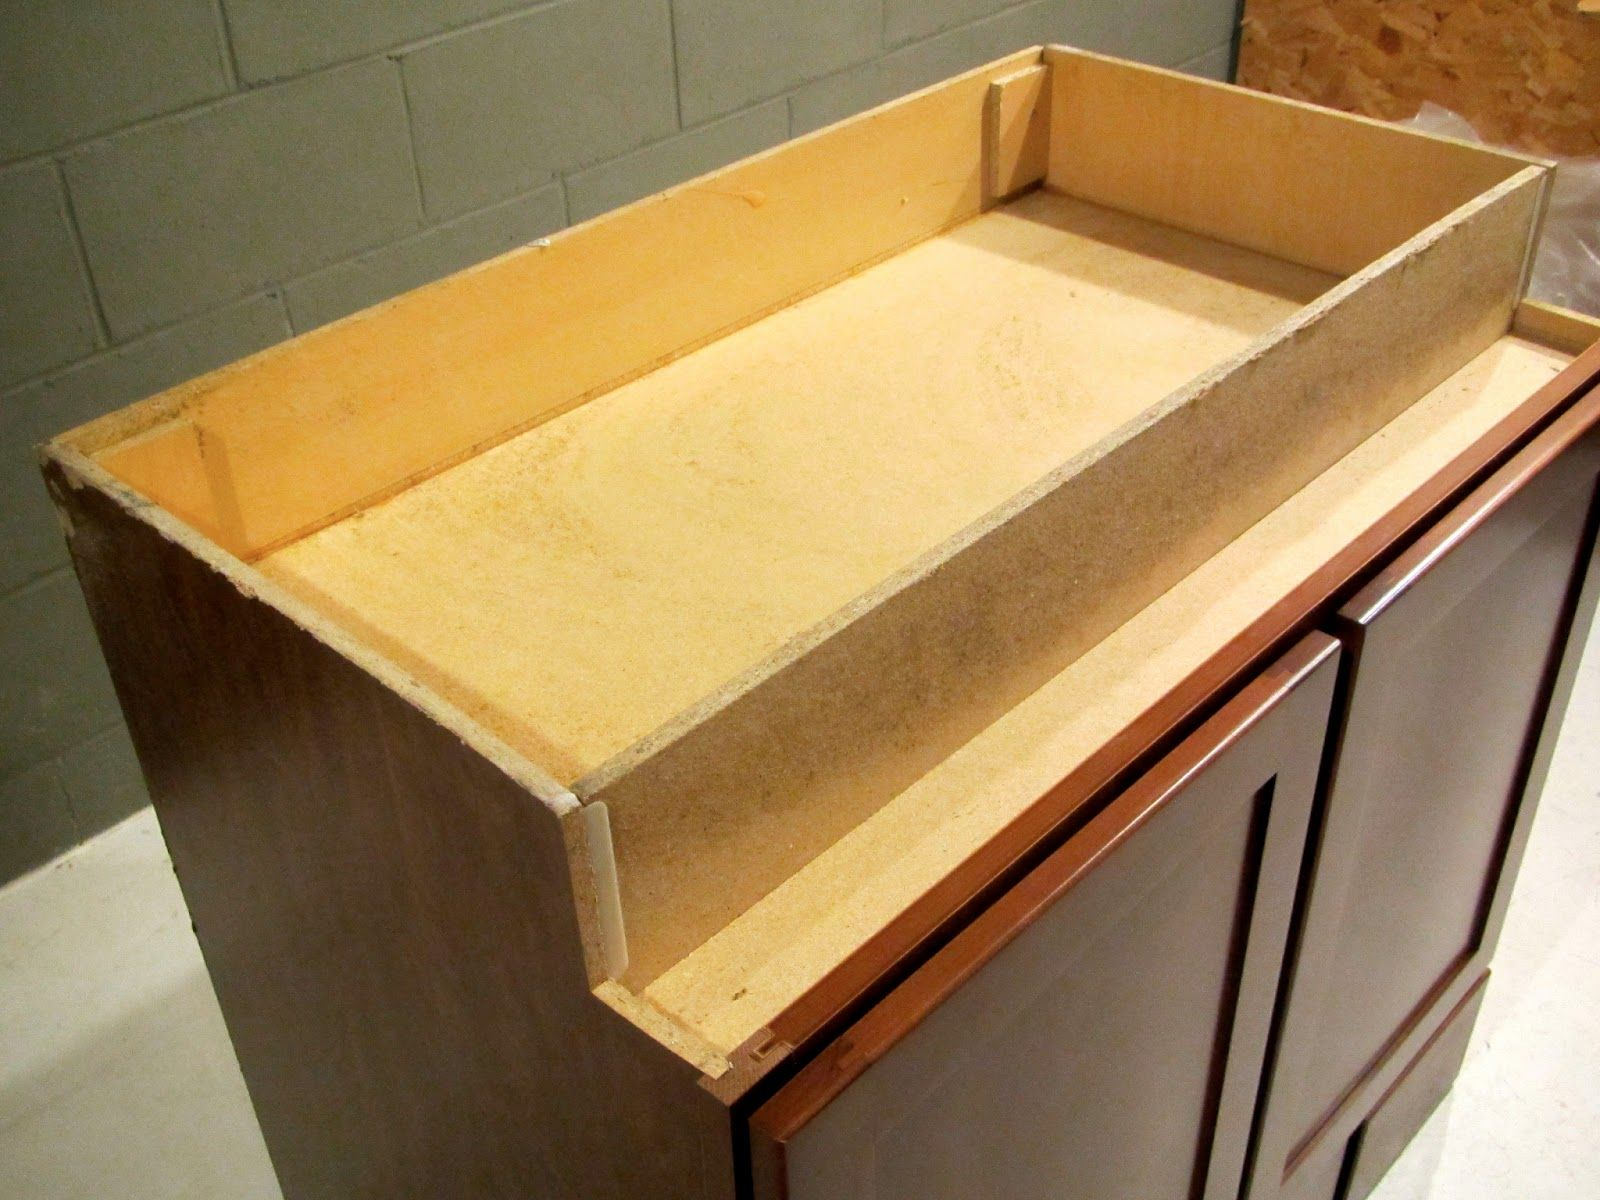 Image Result For Adding Legs To Bathroom Vanity Vanity Bathroom Vanity Bathroom